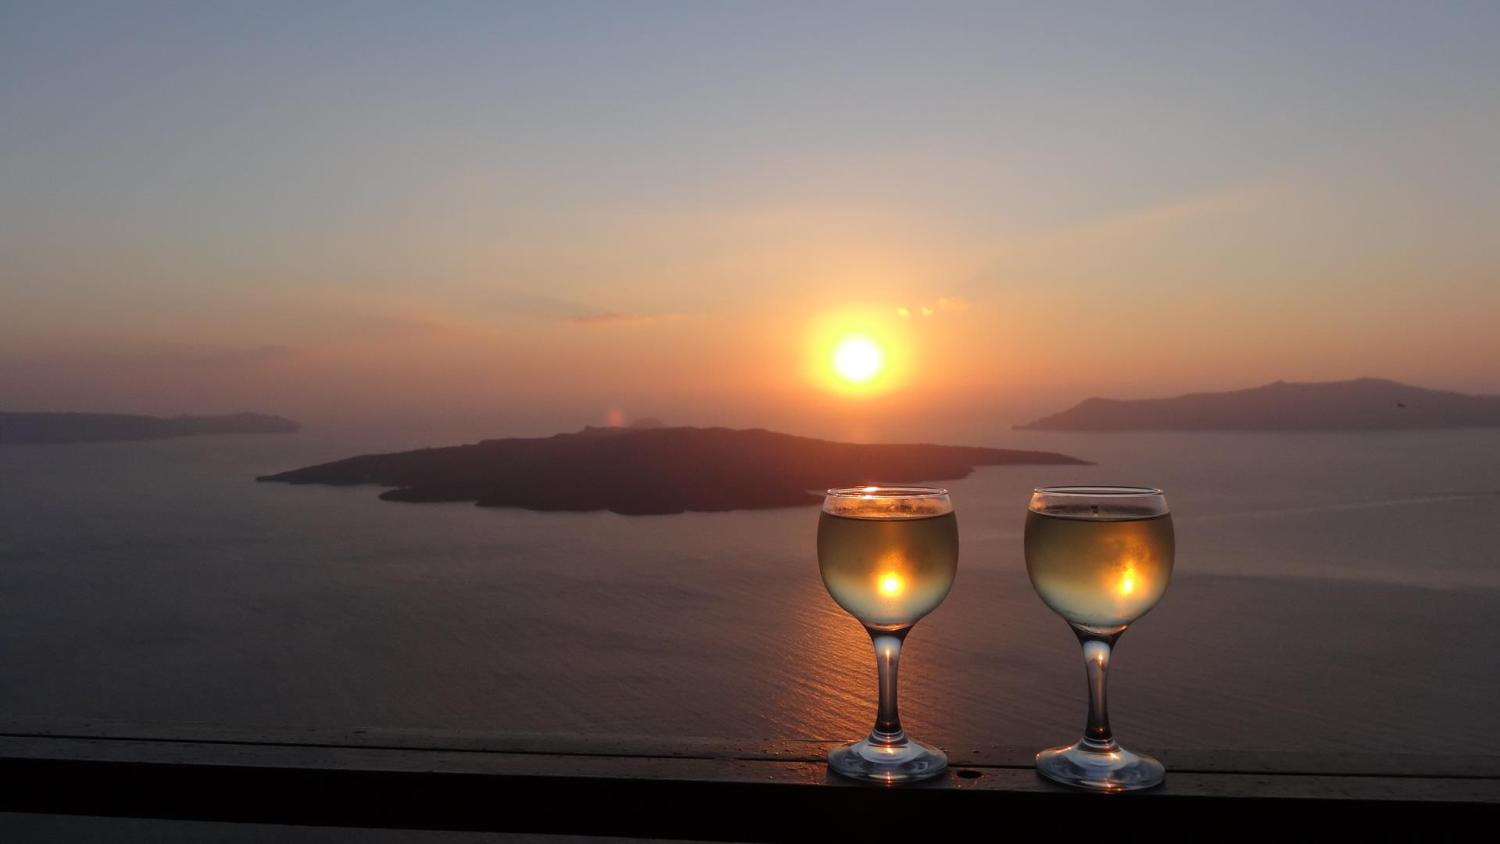 Rest and relaxation. Enjoying a drink on the Santorini caldera during sunset.